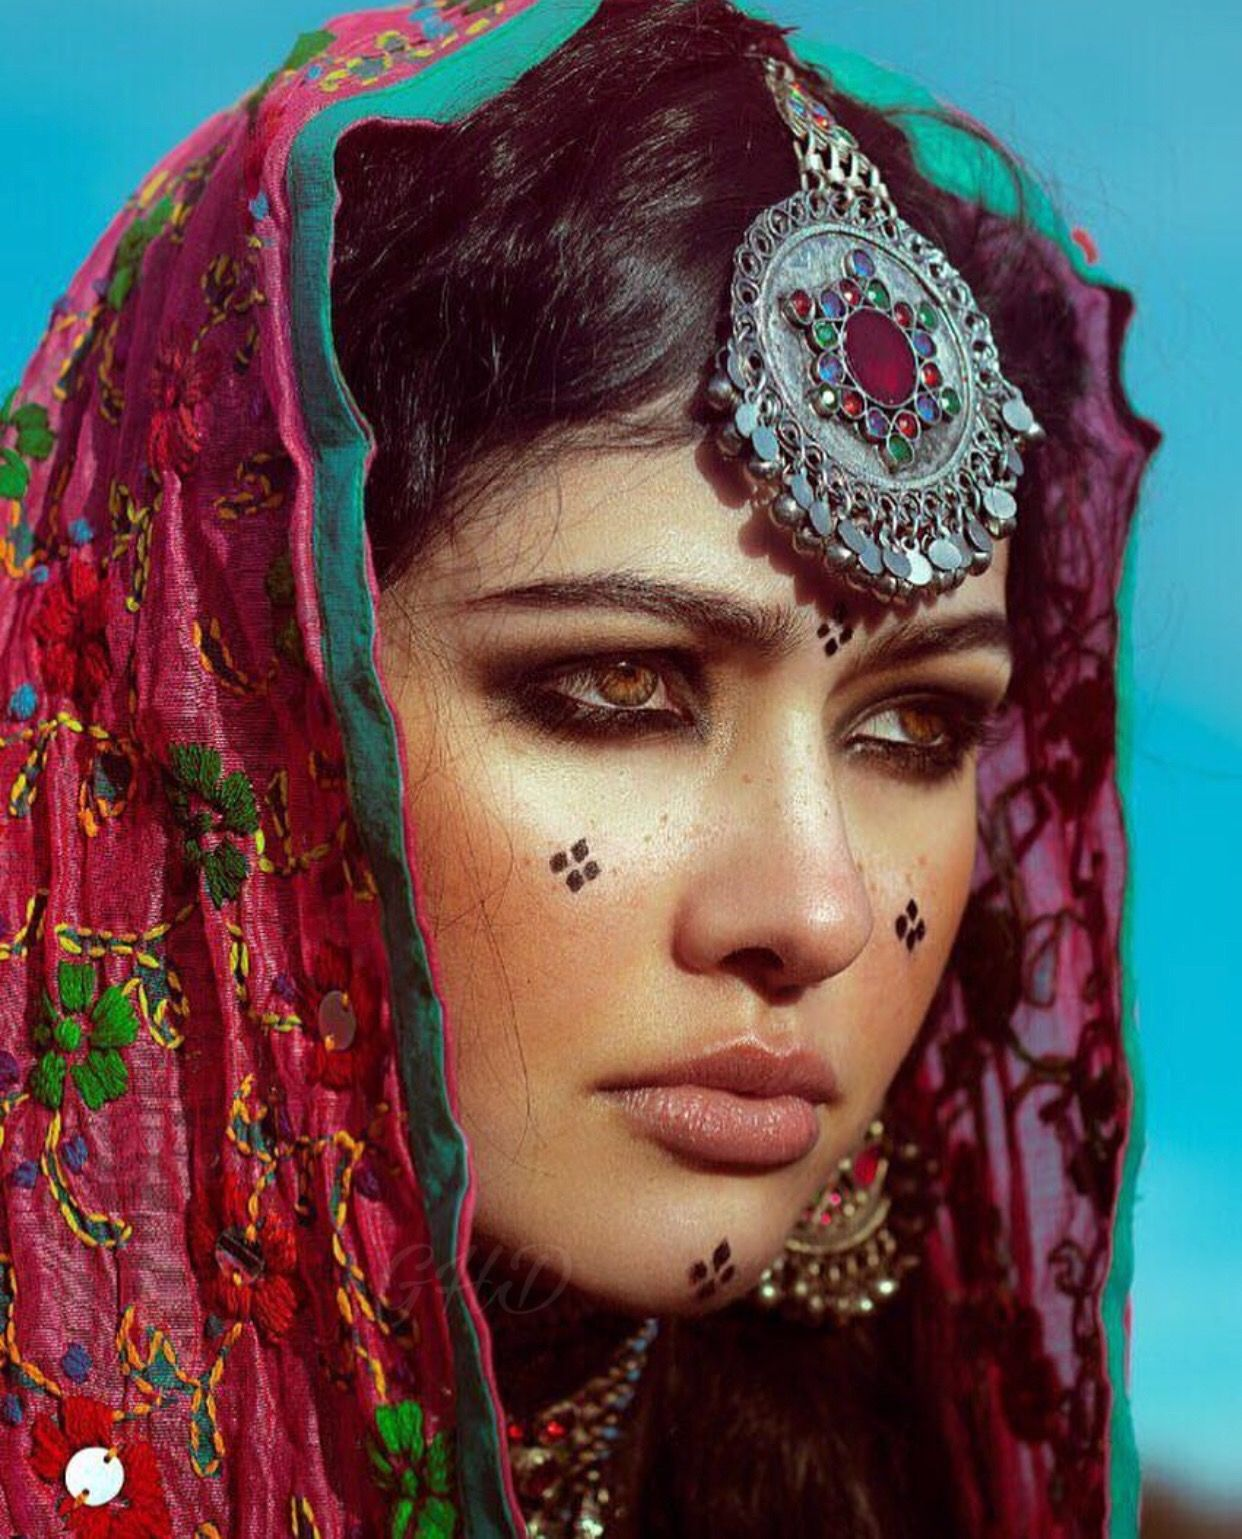 Afghan Style Makeup Jewelry Persian Girls Tribal Face Indian Aesthetic